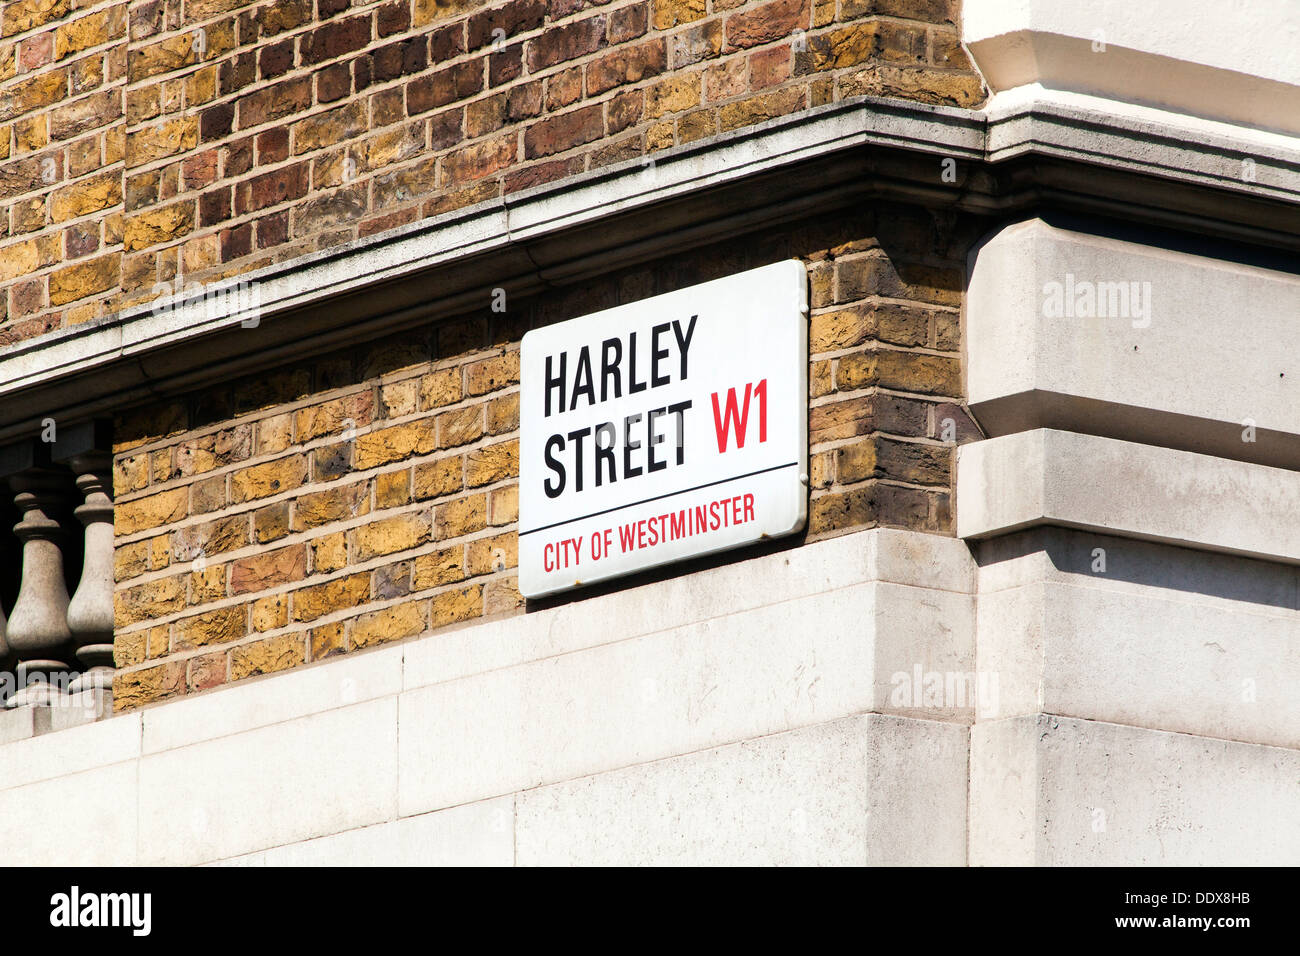 Harley Street London, location of many private medical consultants. - Stock Image